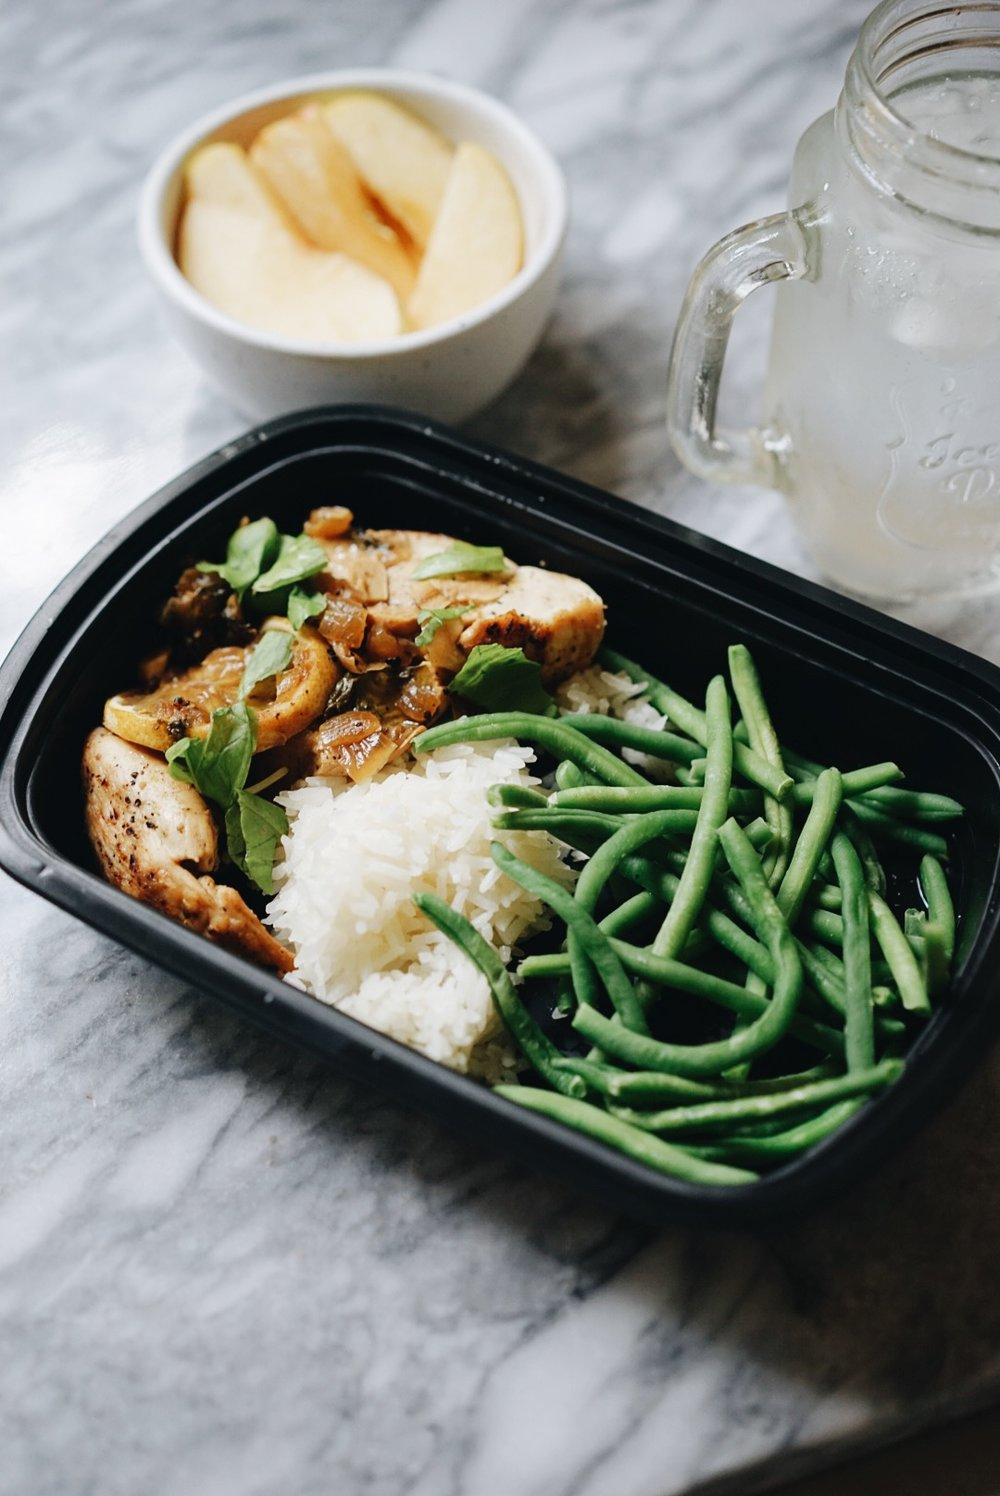 4 oz of chicken, 3 oz of white rice, and 4oz of steamed green beans and 1/2 of a fuji apple.   The macros: 274 calories for the entire meal, 34g of carbs, 31g of protein, and 2g of fat